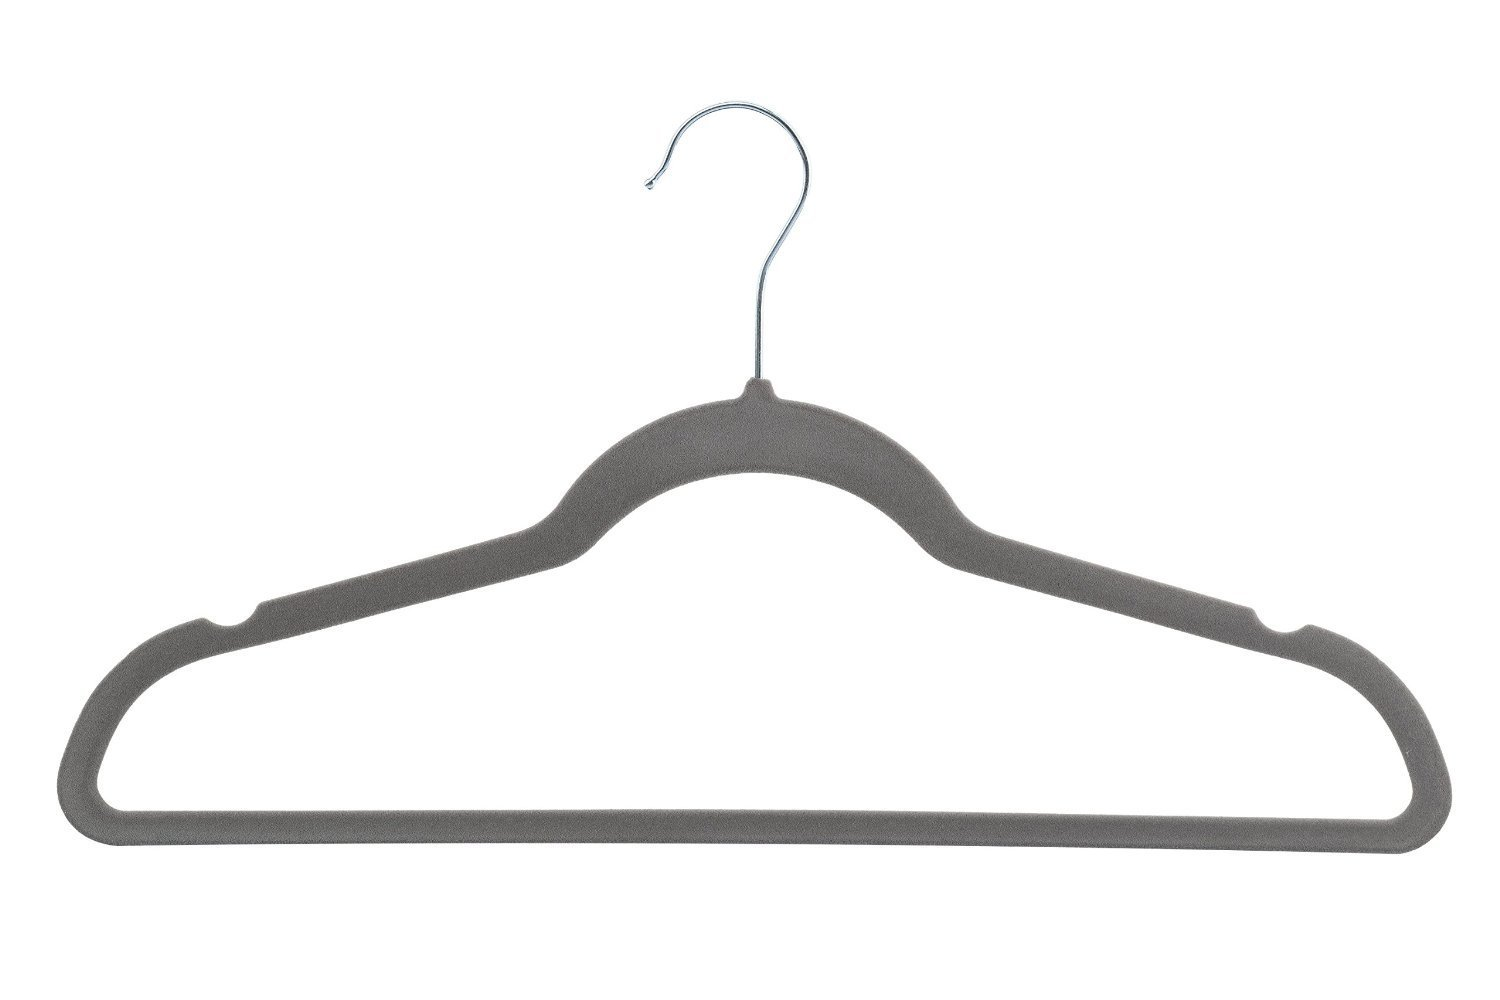 Home-it 50 Pack Clothes Hangers Gray Velvet Hangers Clothes Hanger Ultra Thin No Slip